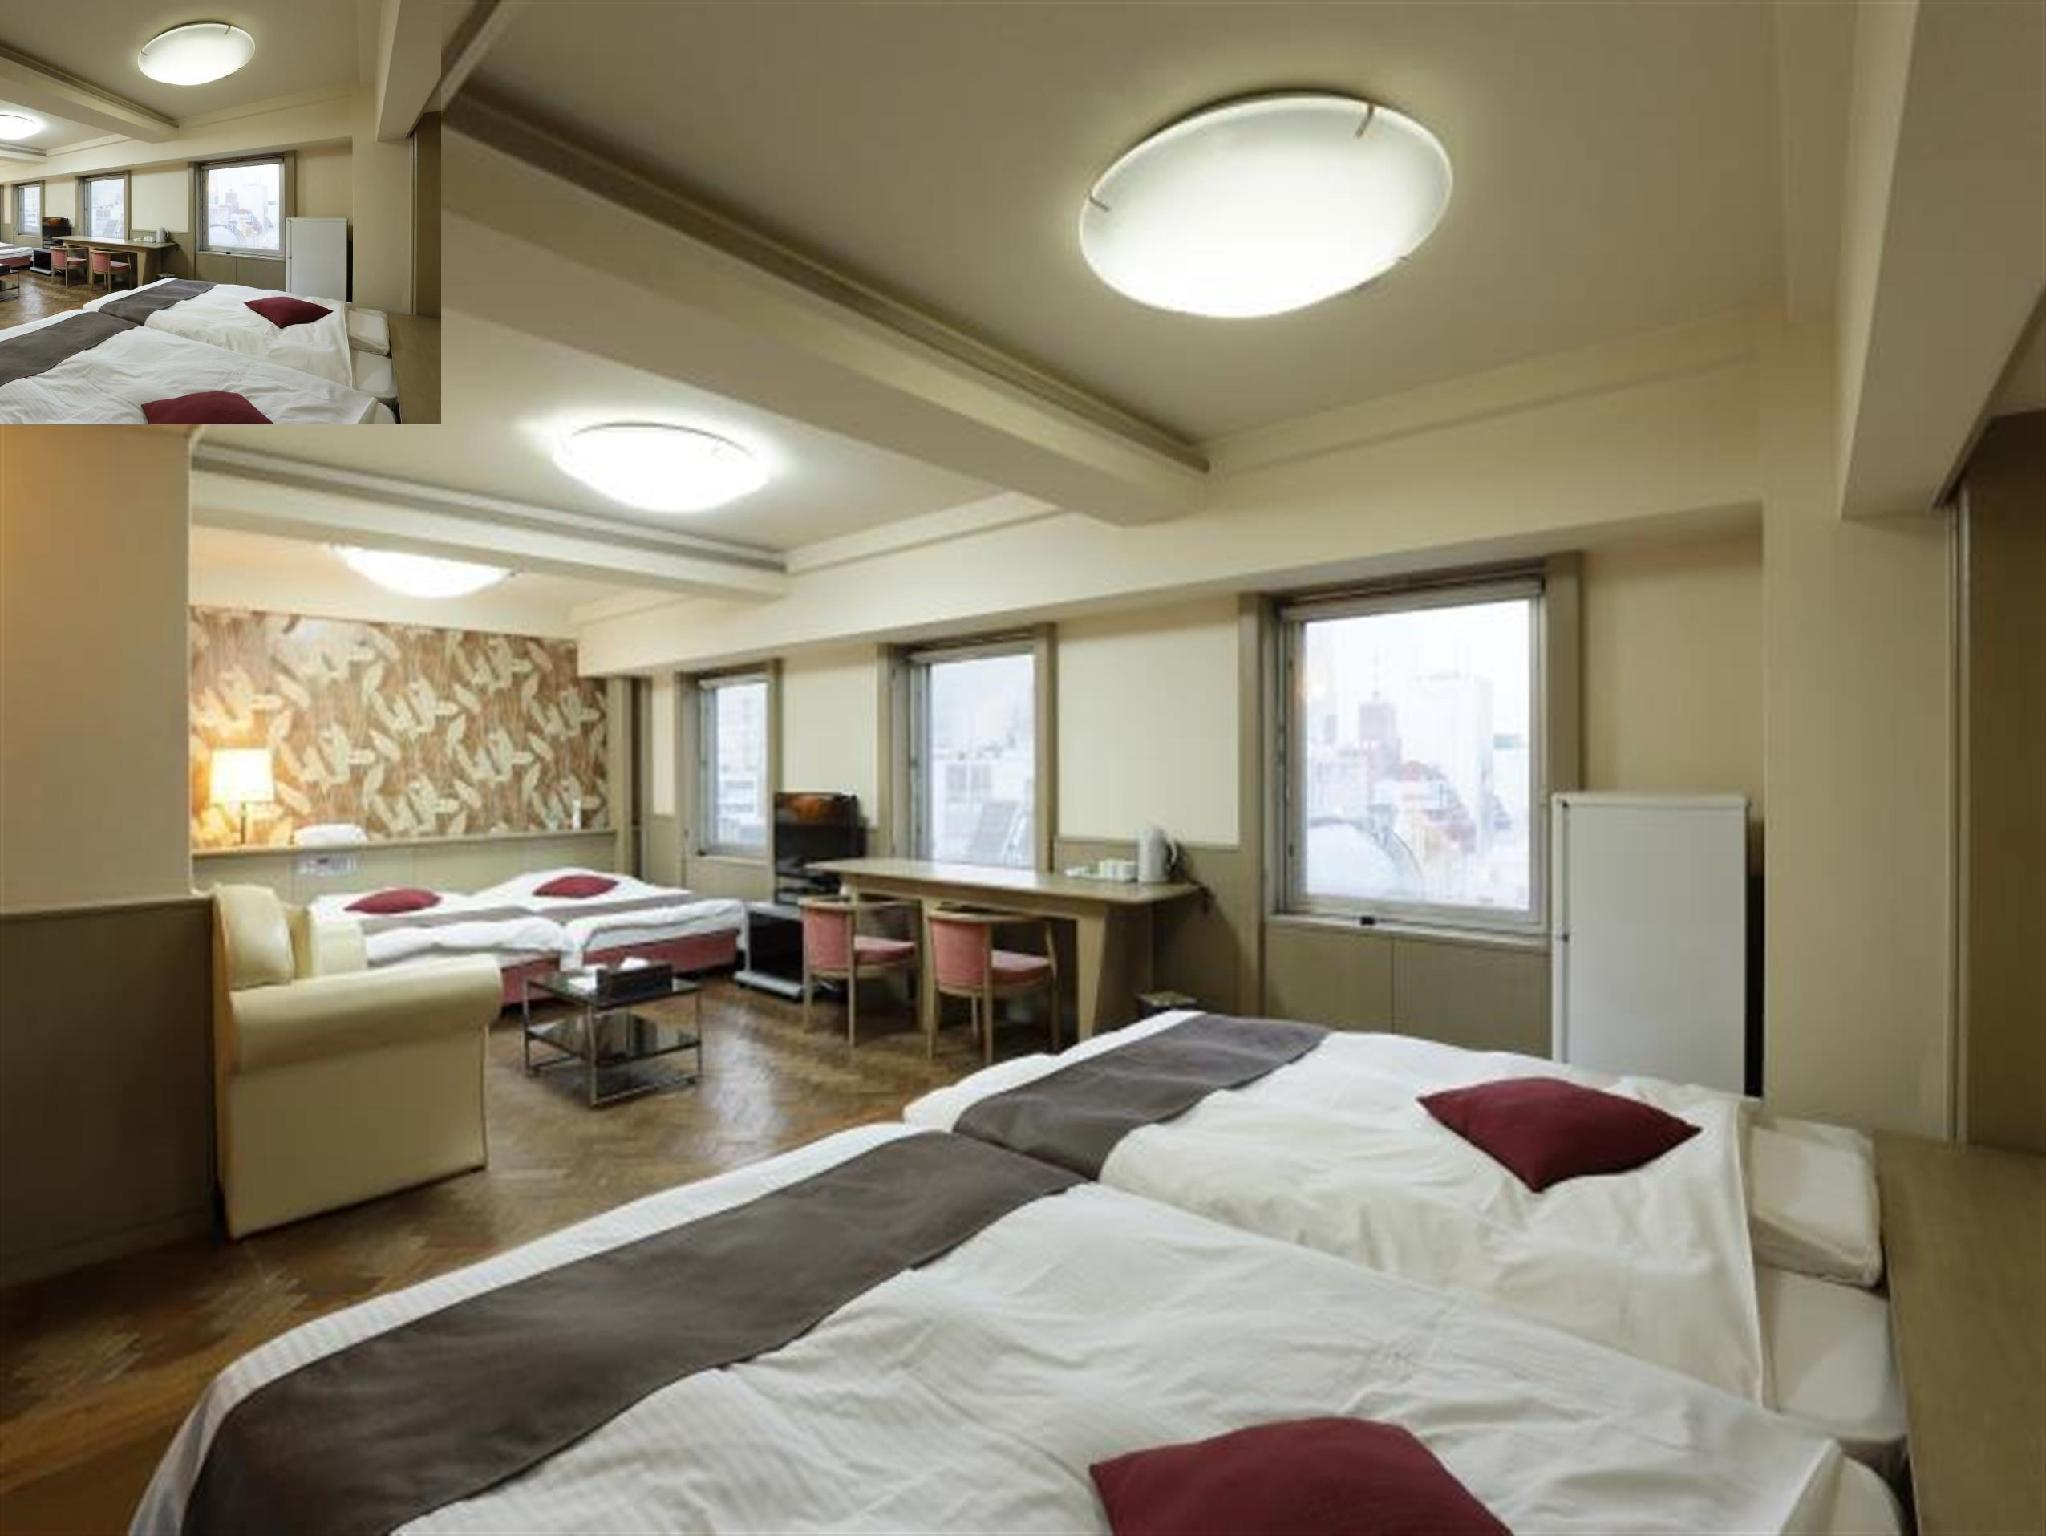 四床房(2張雙人床+兩床+加床) (4 Bed Room (2 Double Bed & Twin Bed & 1 Extra Bed))